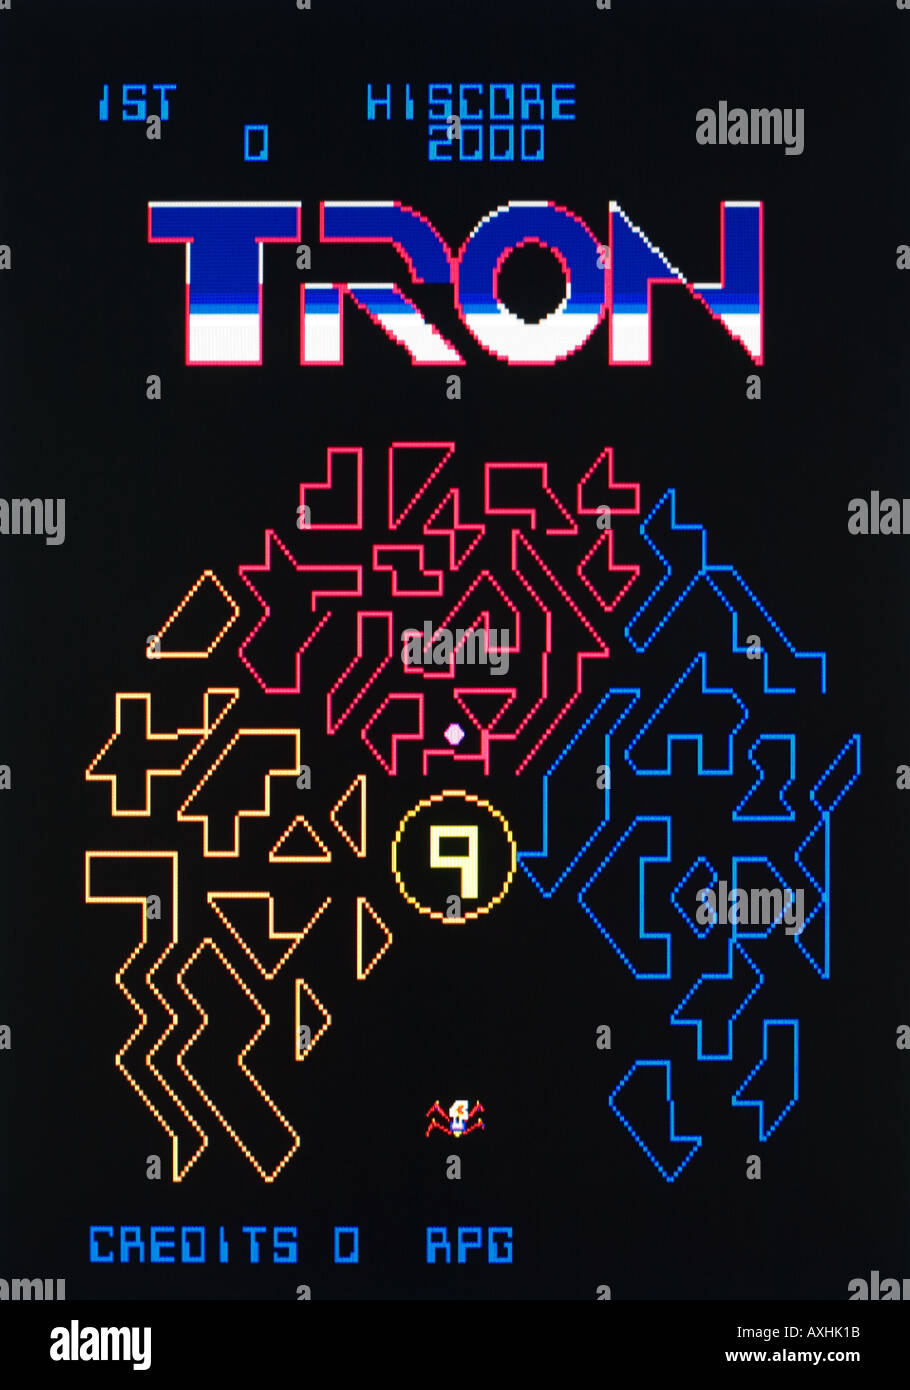 Tron Bally Midway Mfg Co Walt Disney Productions 1983 Vintage arcade videogame screen shot - EDITORIAL USE ONLY - Stock Image